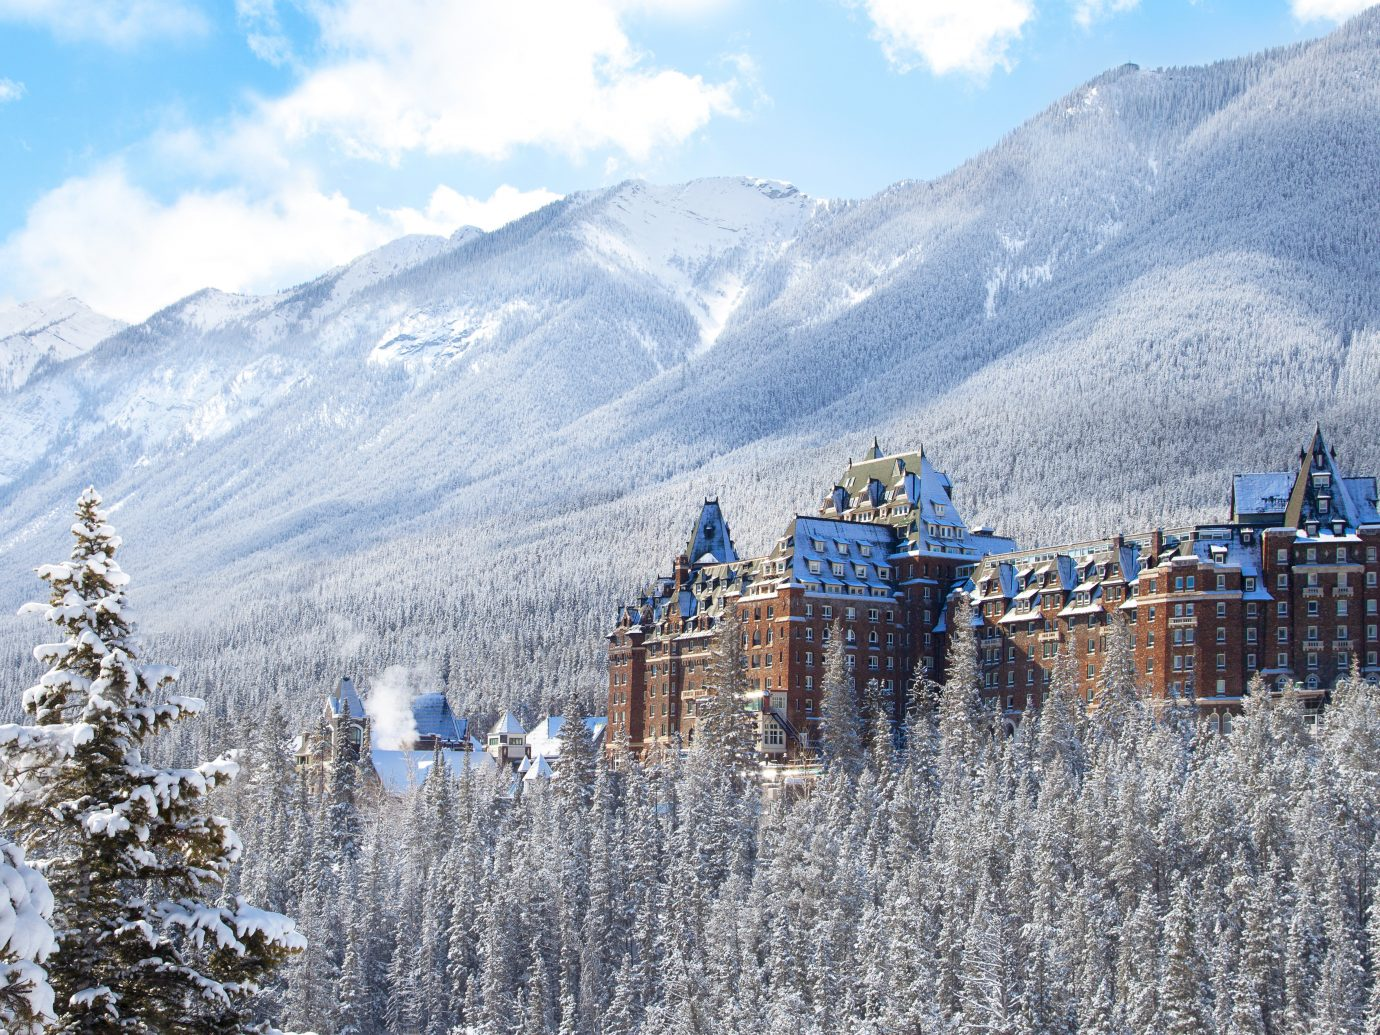 Exterior of Fairmont Banff Springs Hotel